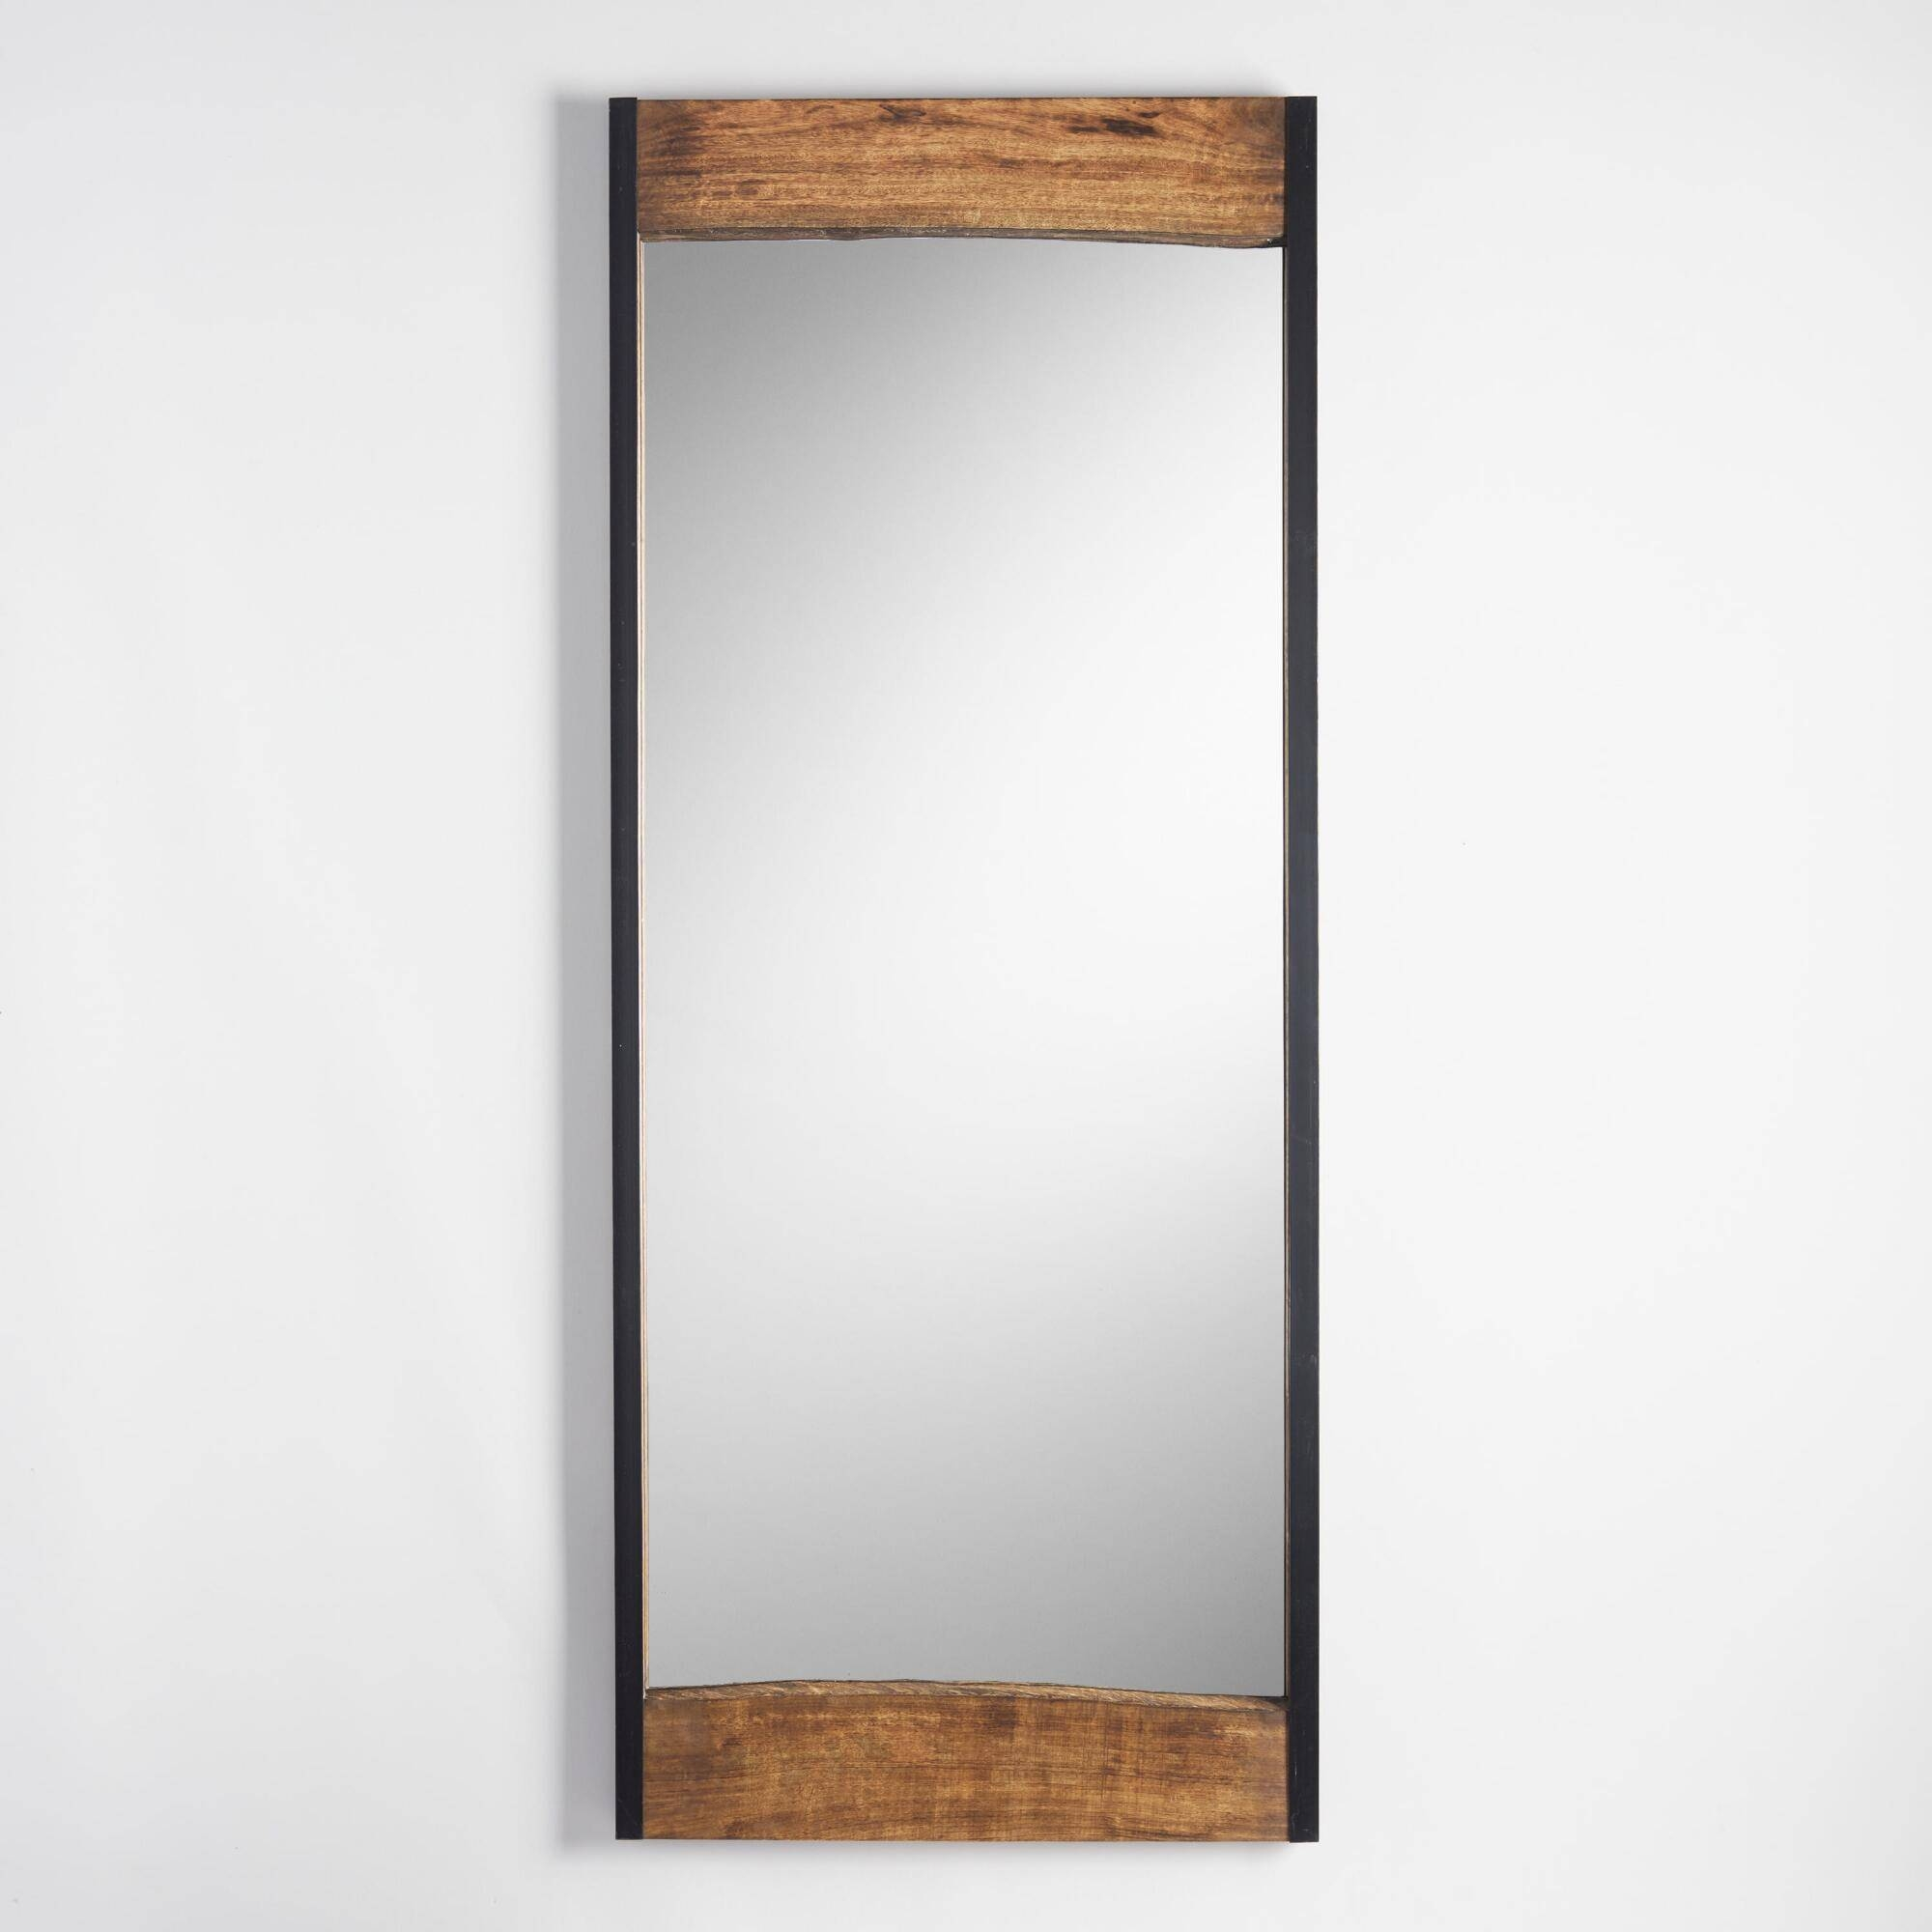 Mirror : Imposing Wrought Iron Floor Standing Mirror Marvelous Regarding Wrought Iron Floor Mirrors (View 12 of 15)